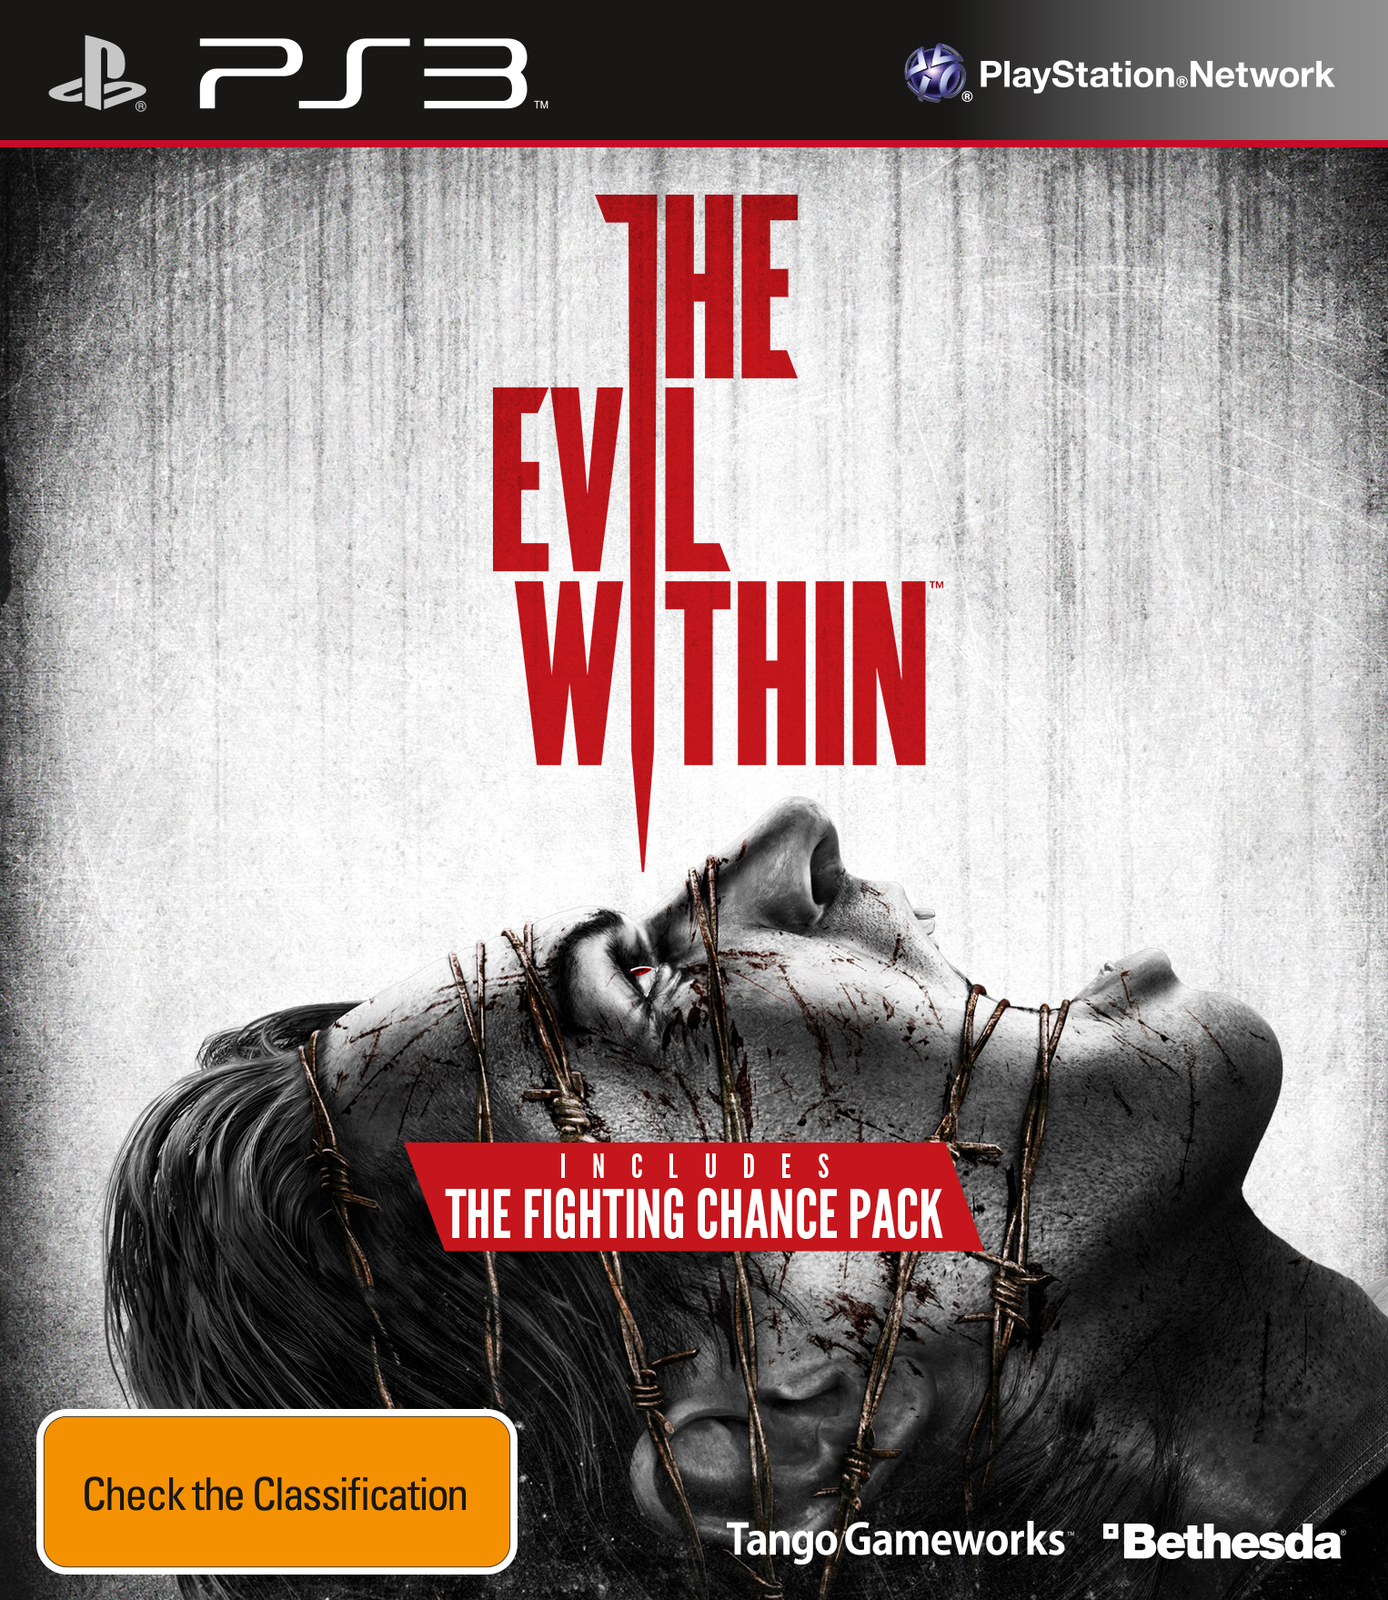 The Evil Within for PS3 image